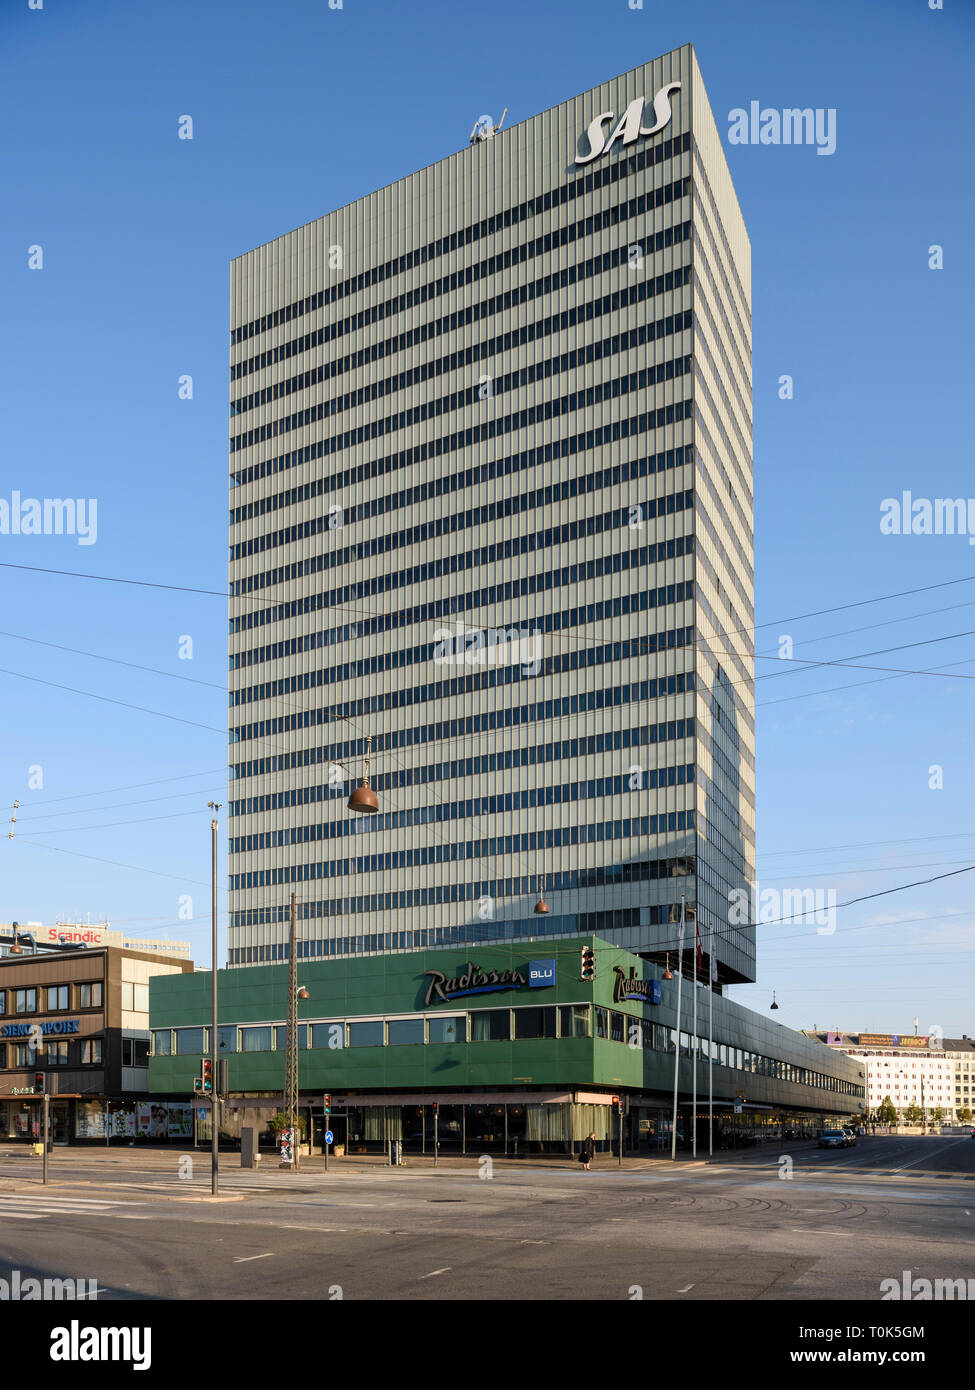 Copenhagen. Denmark. SAS Hotel, (now the Radisson Collection Hotel, Royal Copenhagen) designed by Arne Jacobsen and completed in 1961. Stock Photo